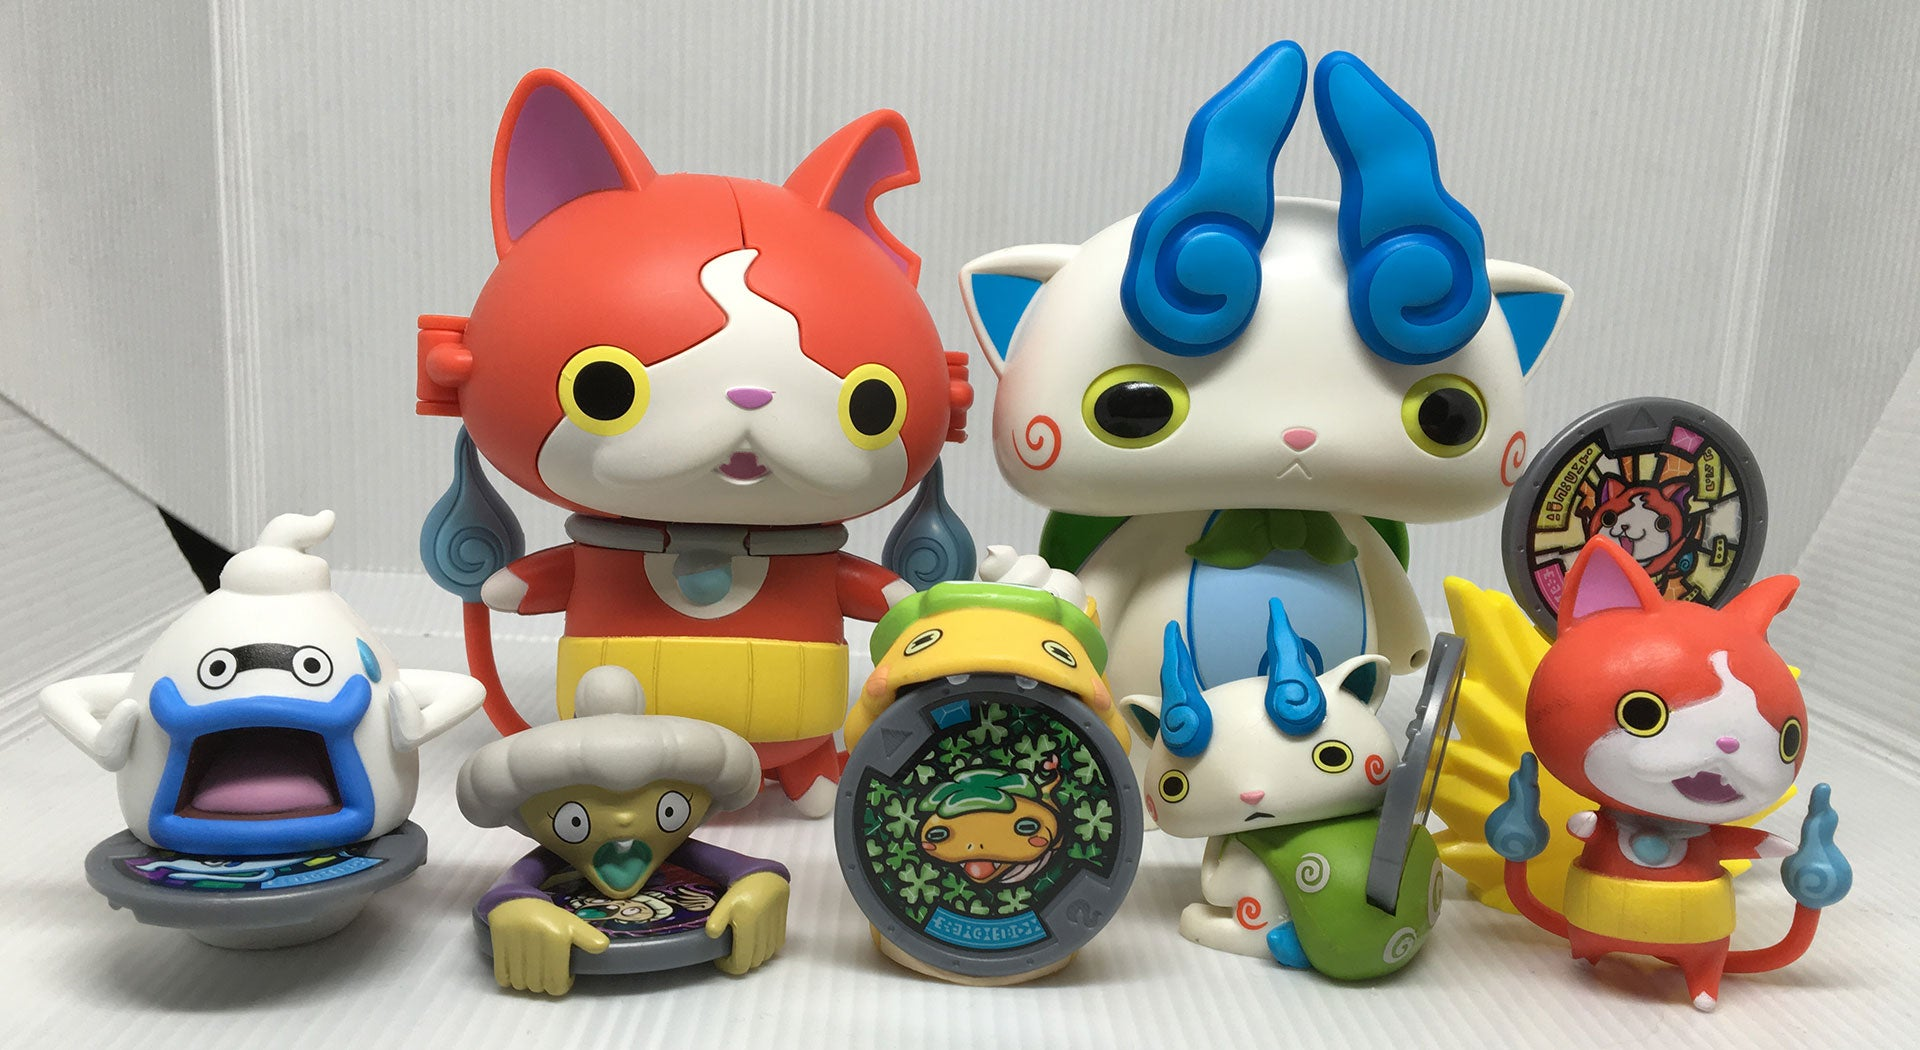 Forget The Apple Watch, The Yo-Kai Watch Toys Are Here